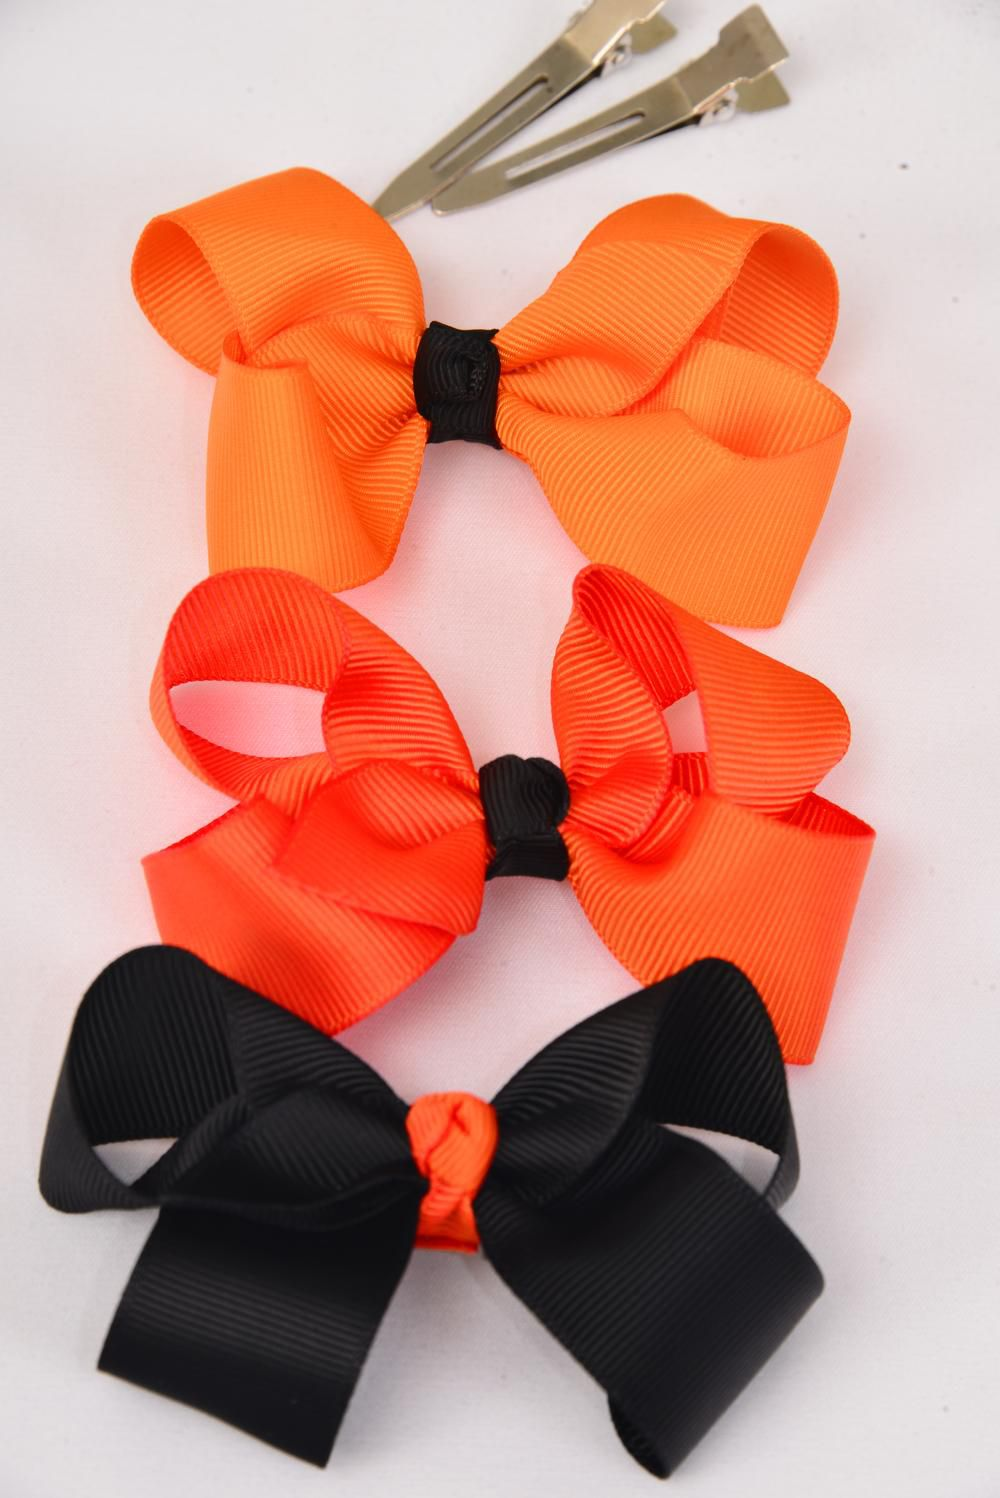 "Hair Bow Halloween Bow-tie 3""x 2"" WGrosgrain Fabric W Alligator Clip/DZ **Alligator Clip**  Bow-3""x 2"",4 of each color Mix,Display Card & UPC Code,W Clear Box"